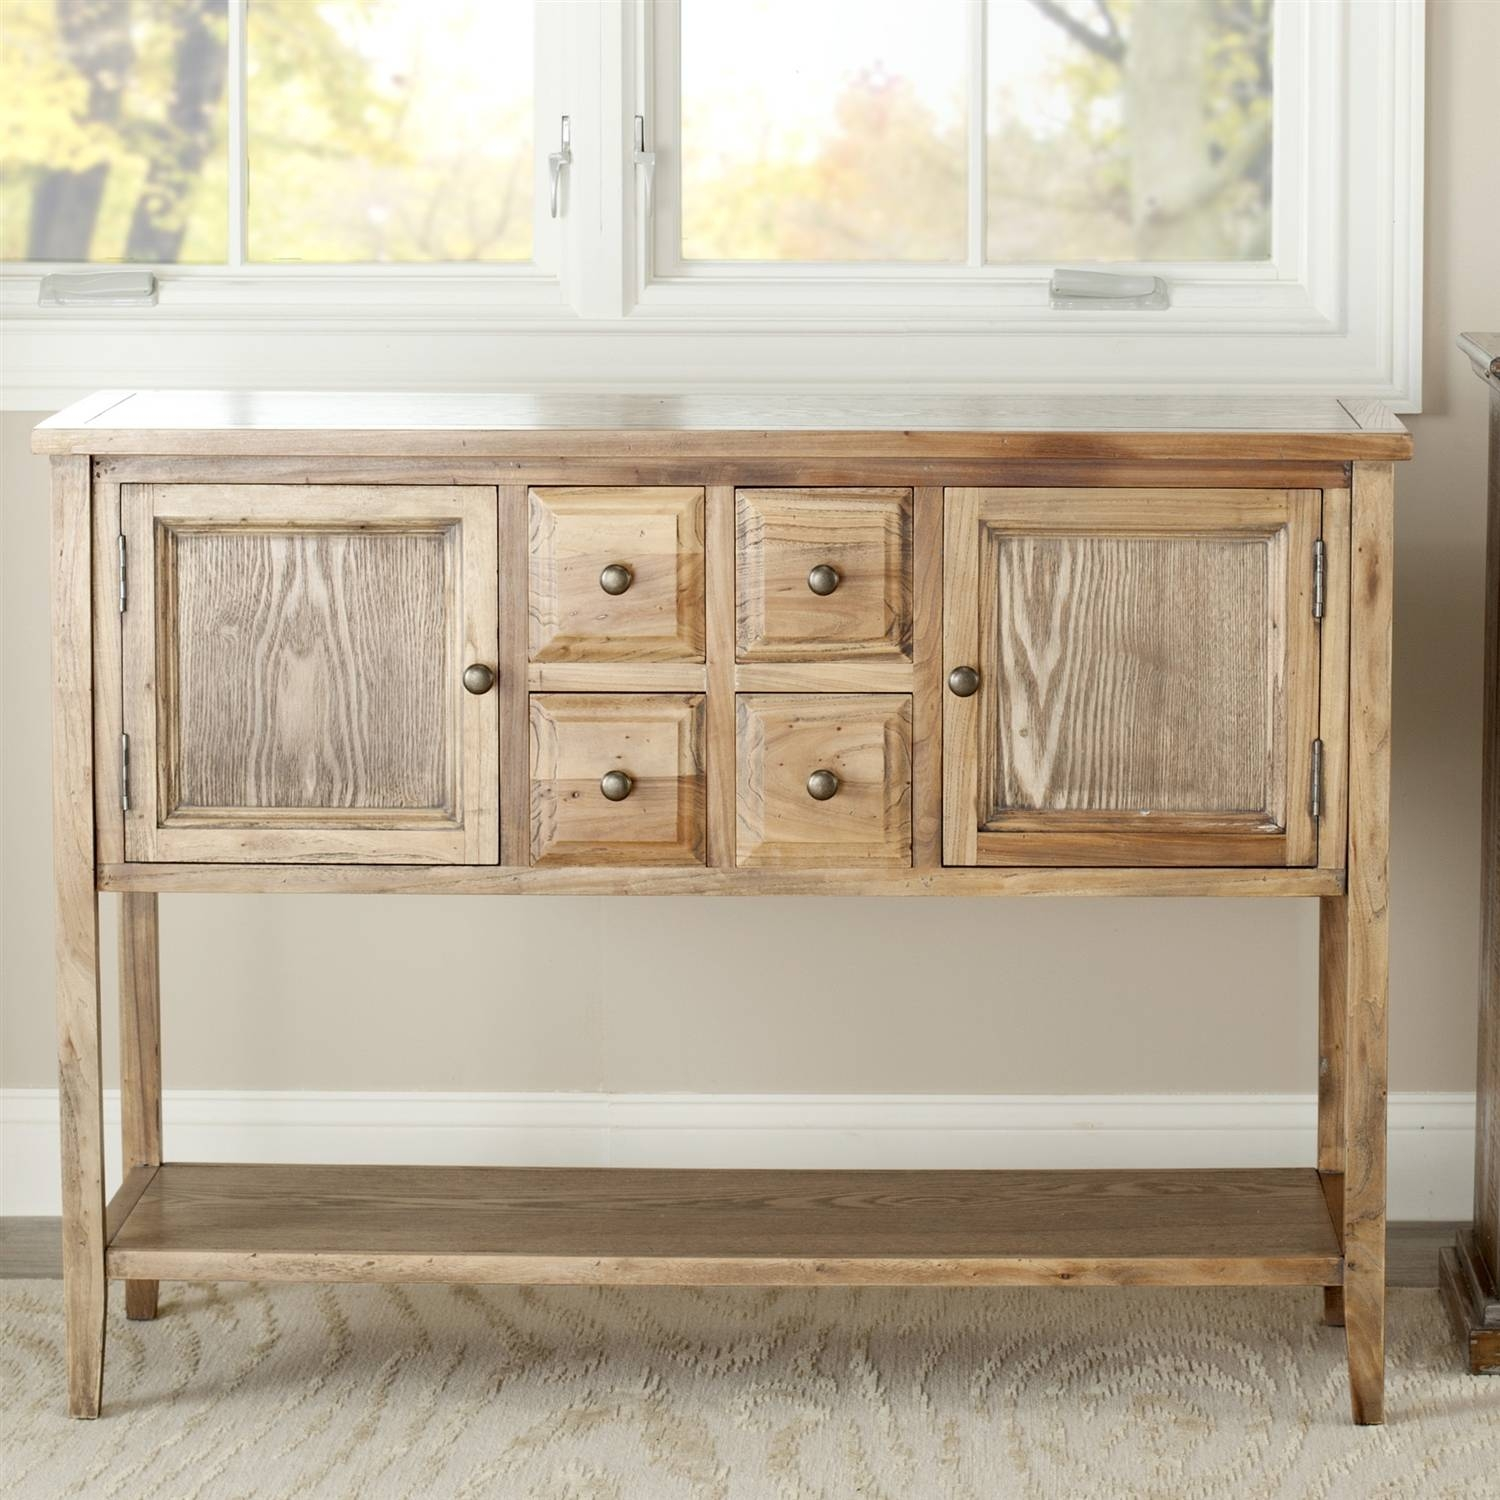 Oak Wood Finish Dining Room Sideboard Buffet Console Table Cabinet Pertaining To 2018 Buffet Console Sideboards (#12 of 15)